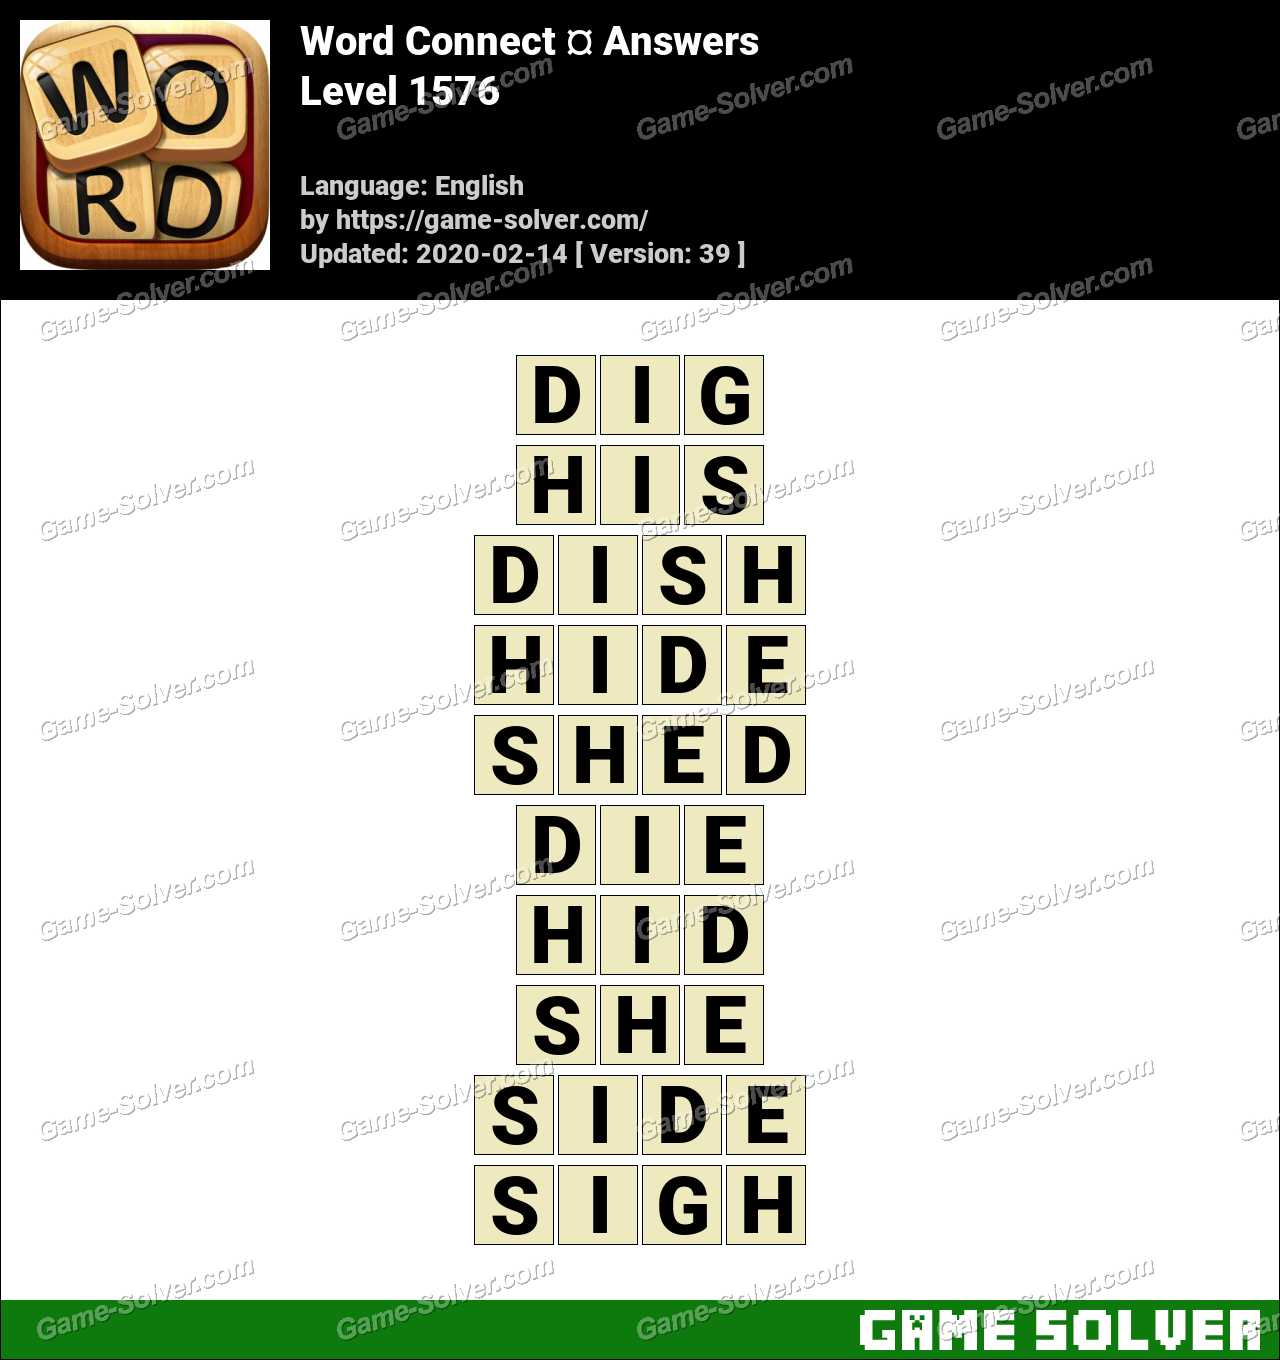 Word Connect Level 1576 Answers